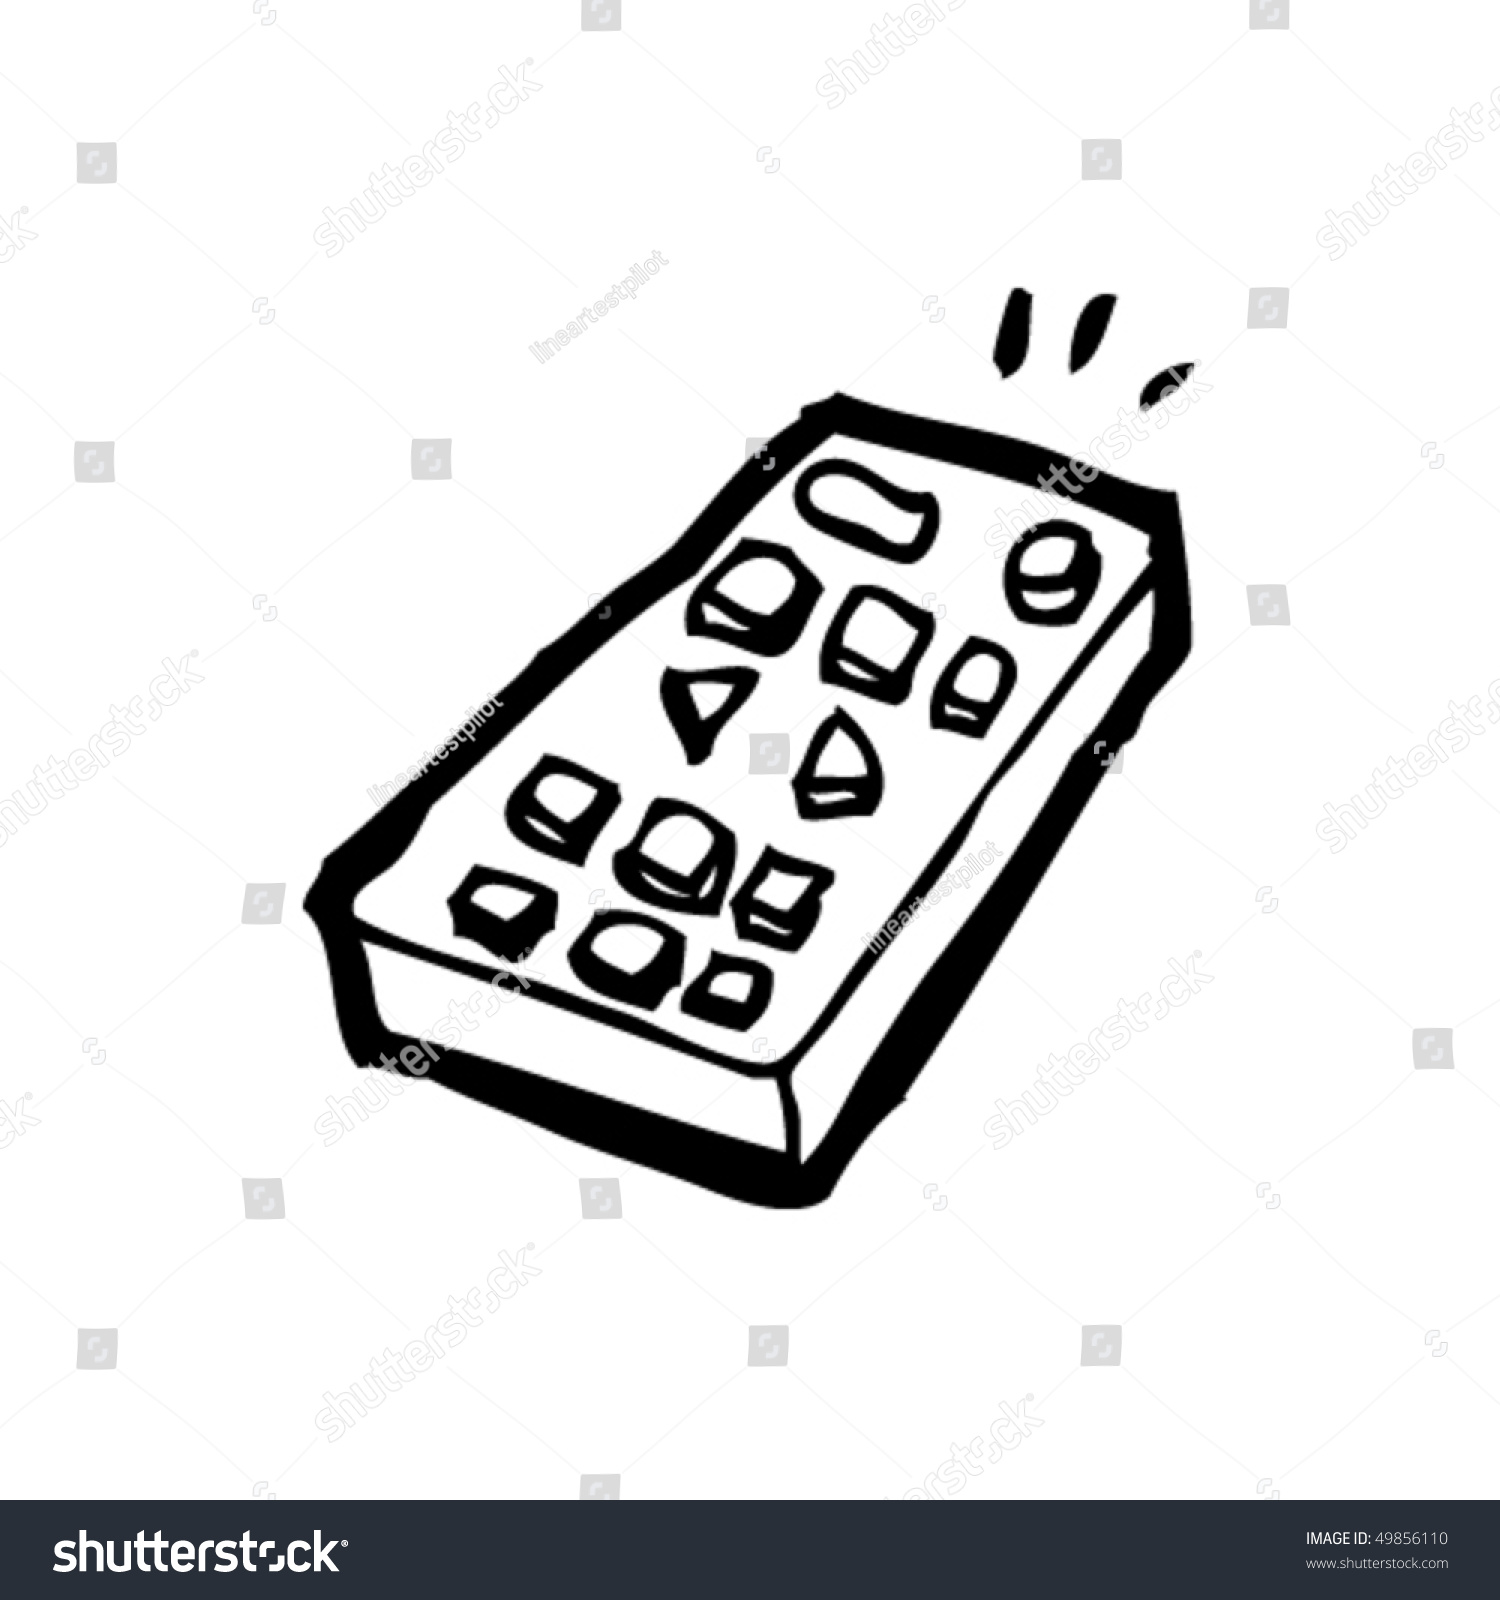 remote control drawing. quirky drawing of a remote control